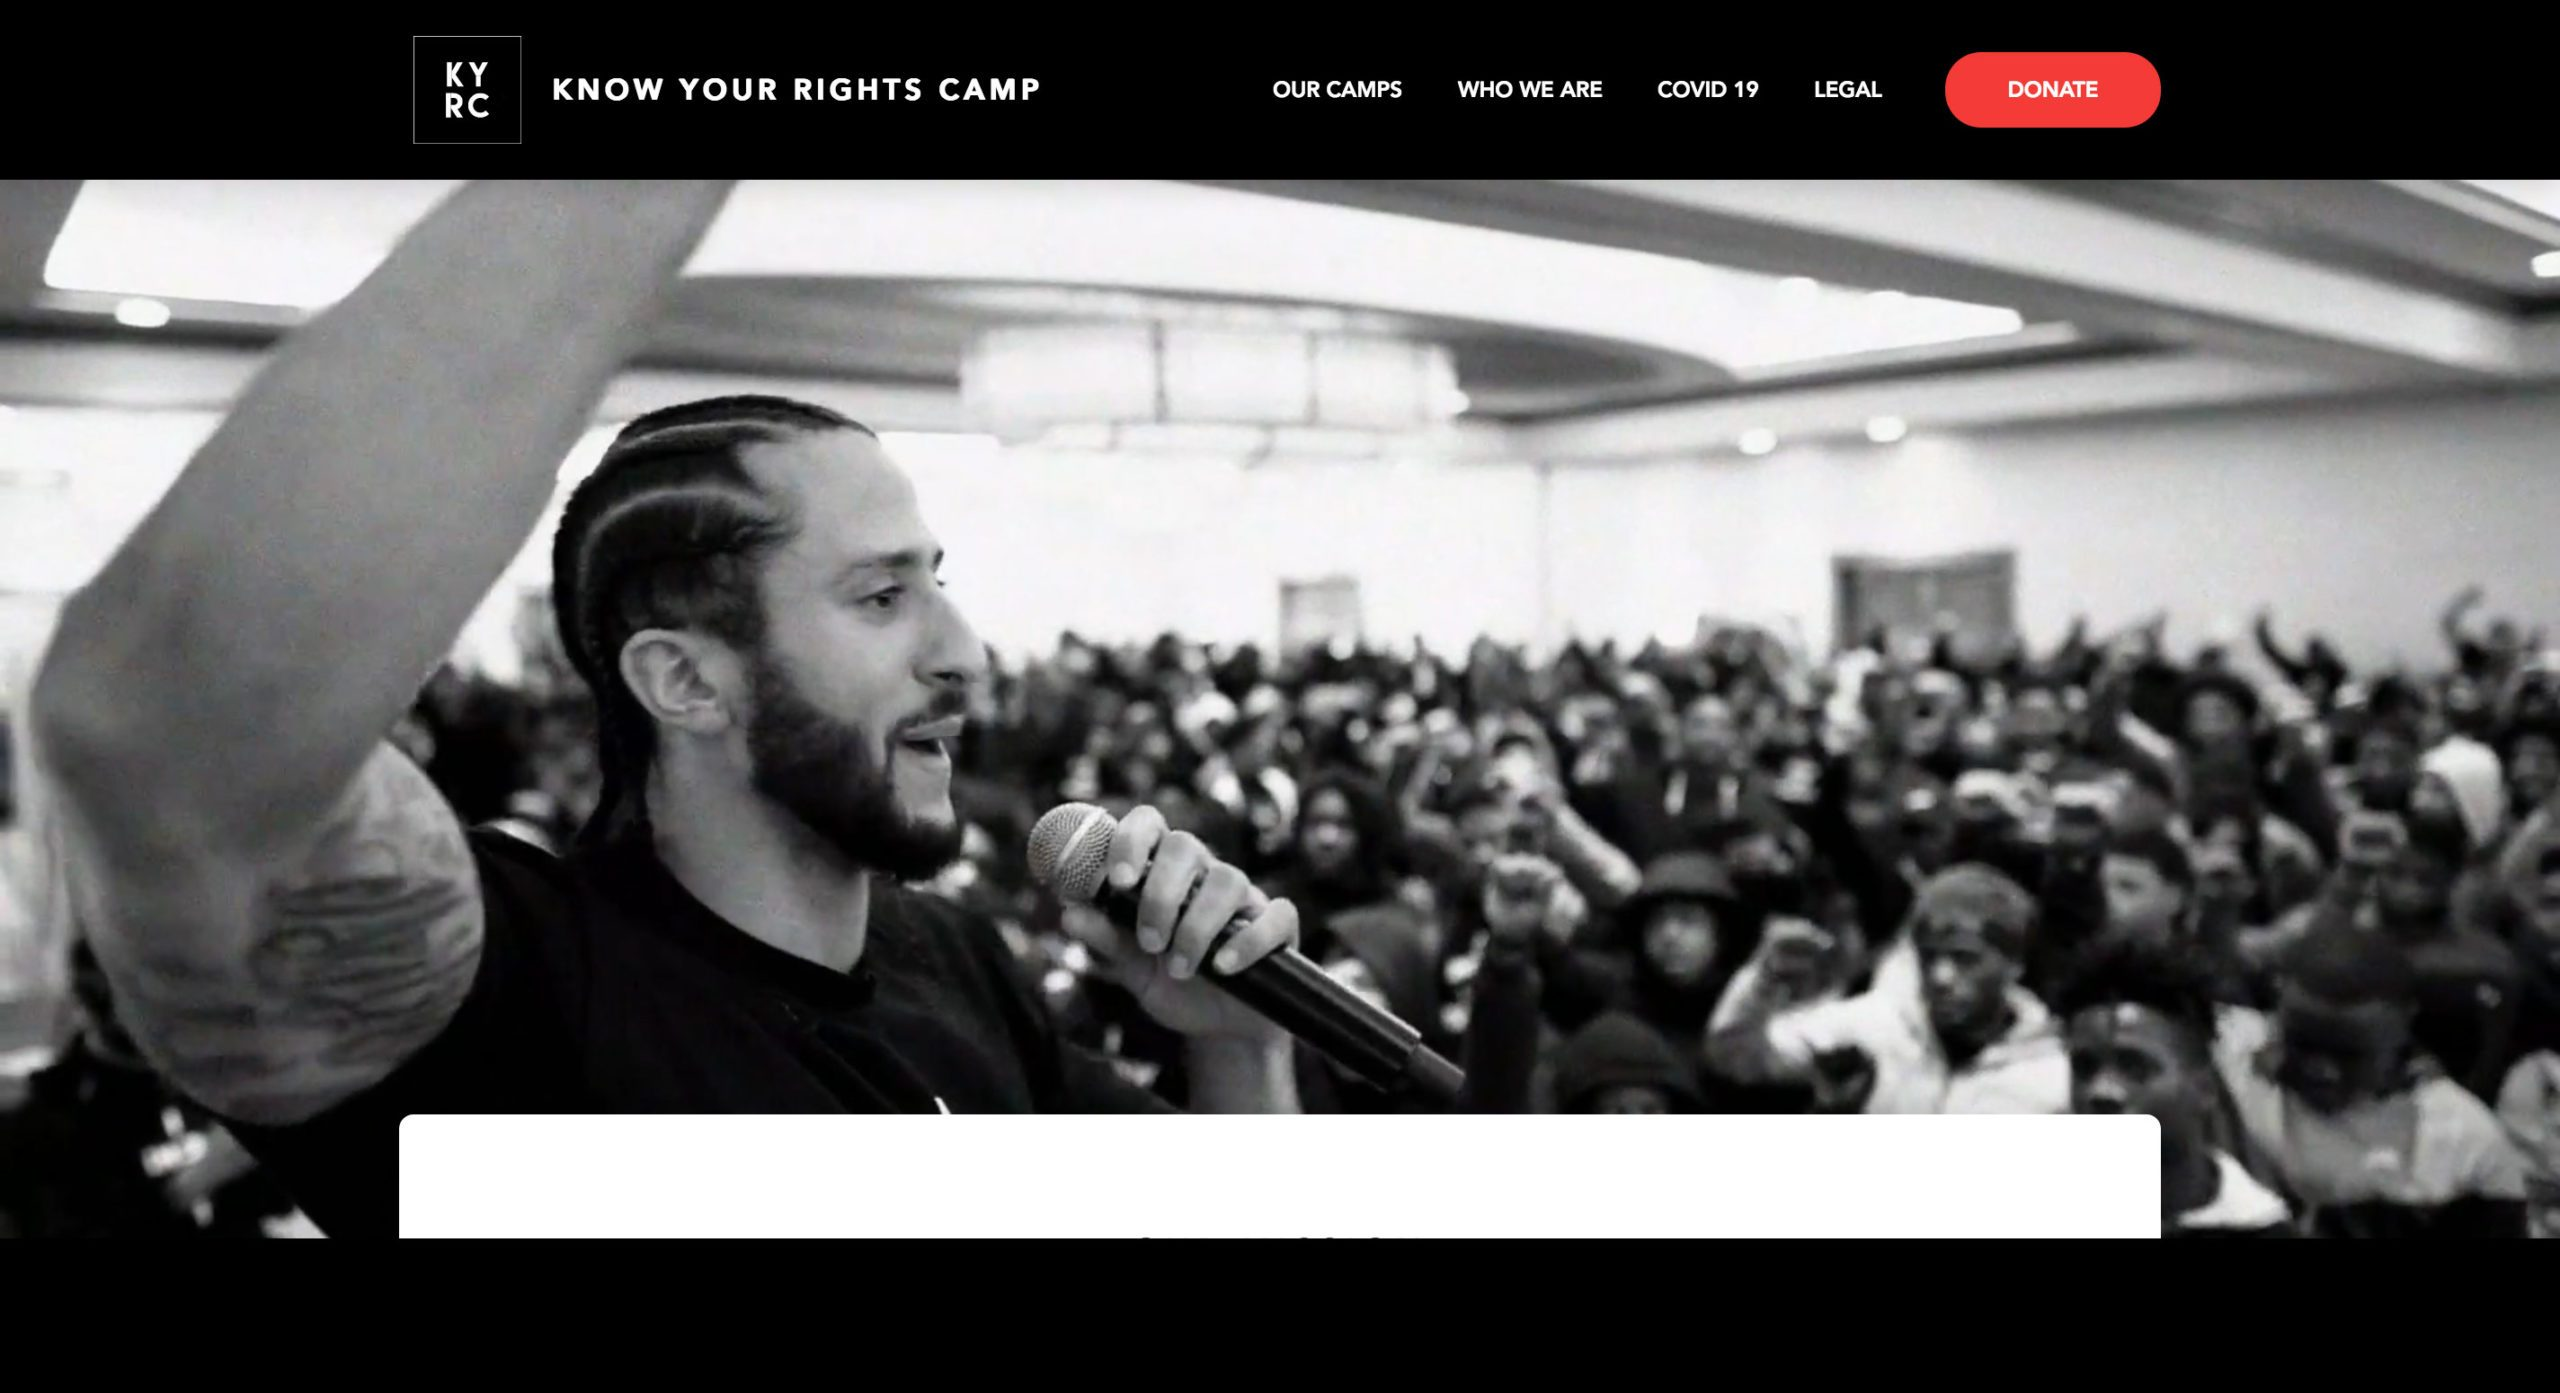 knowyourrightscamp.com